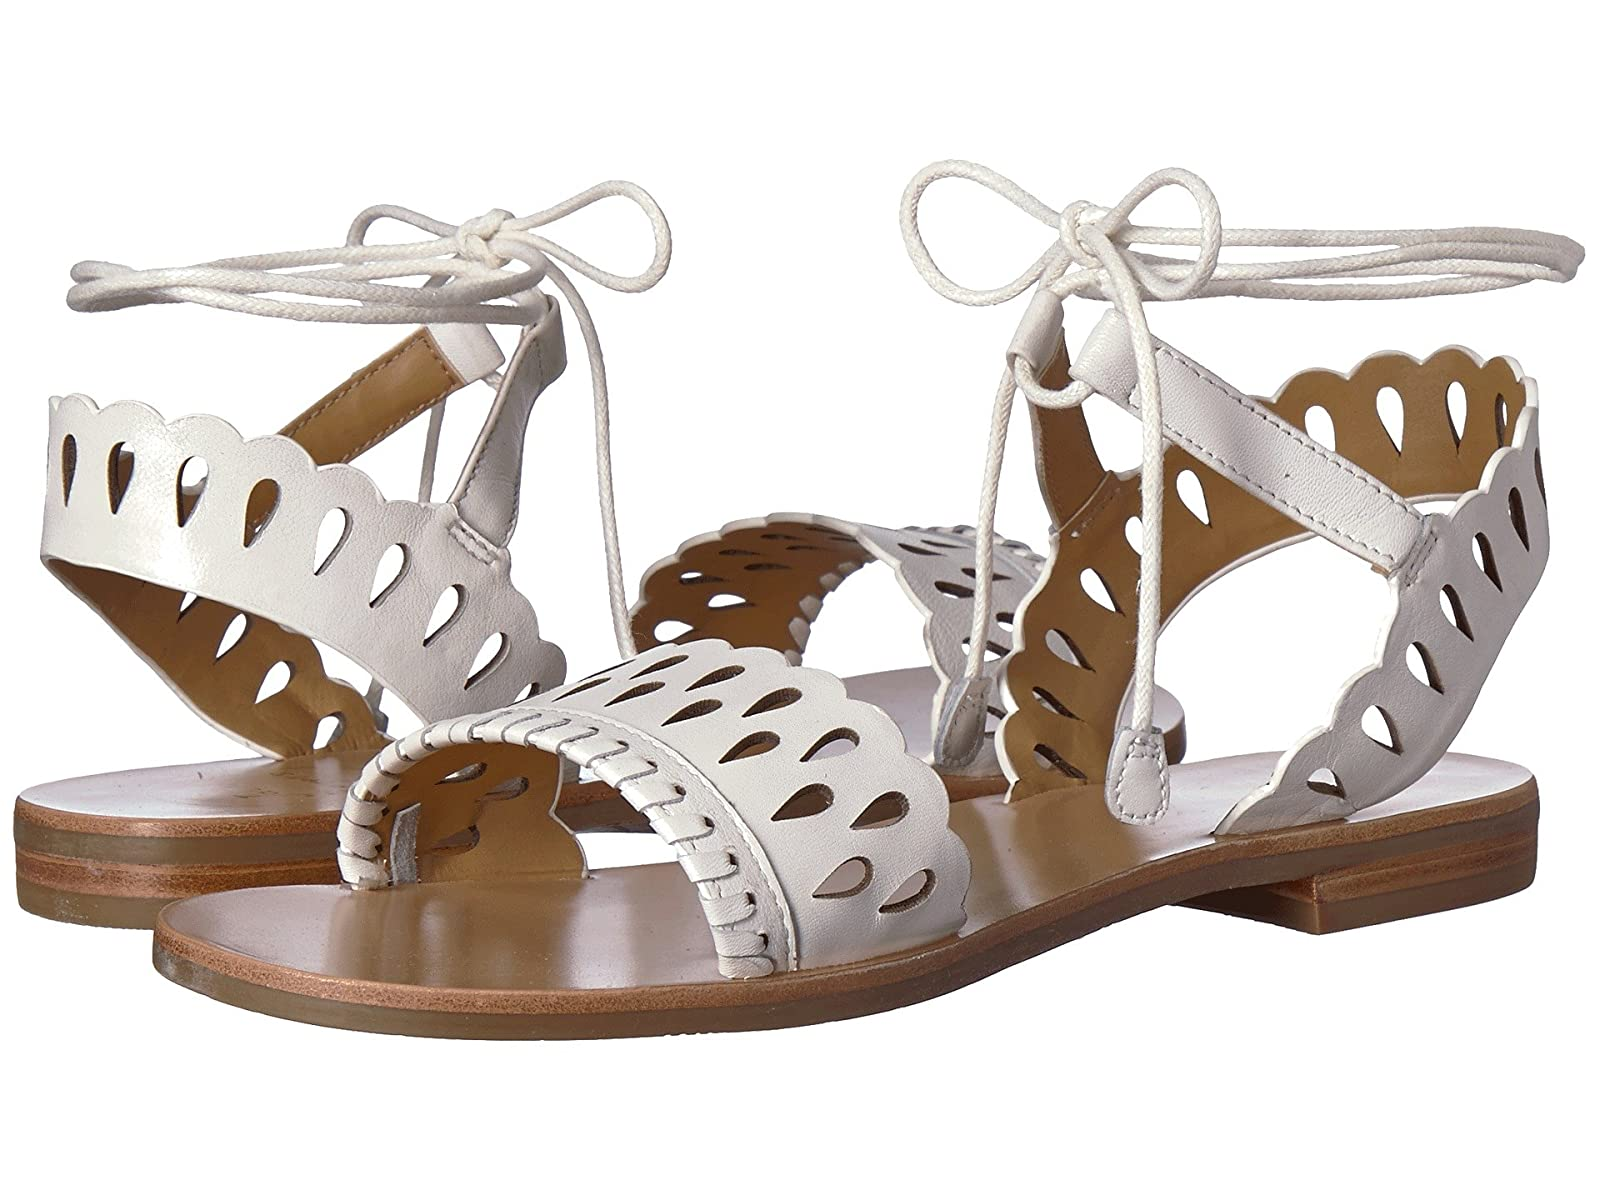 Jack Rogers RubyCheap and distinctive eye-catching shoes